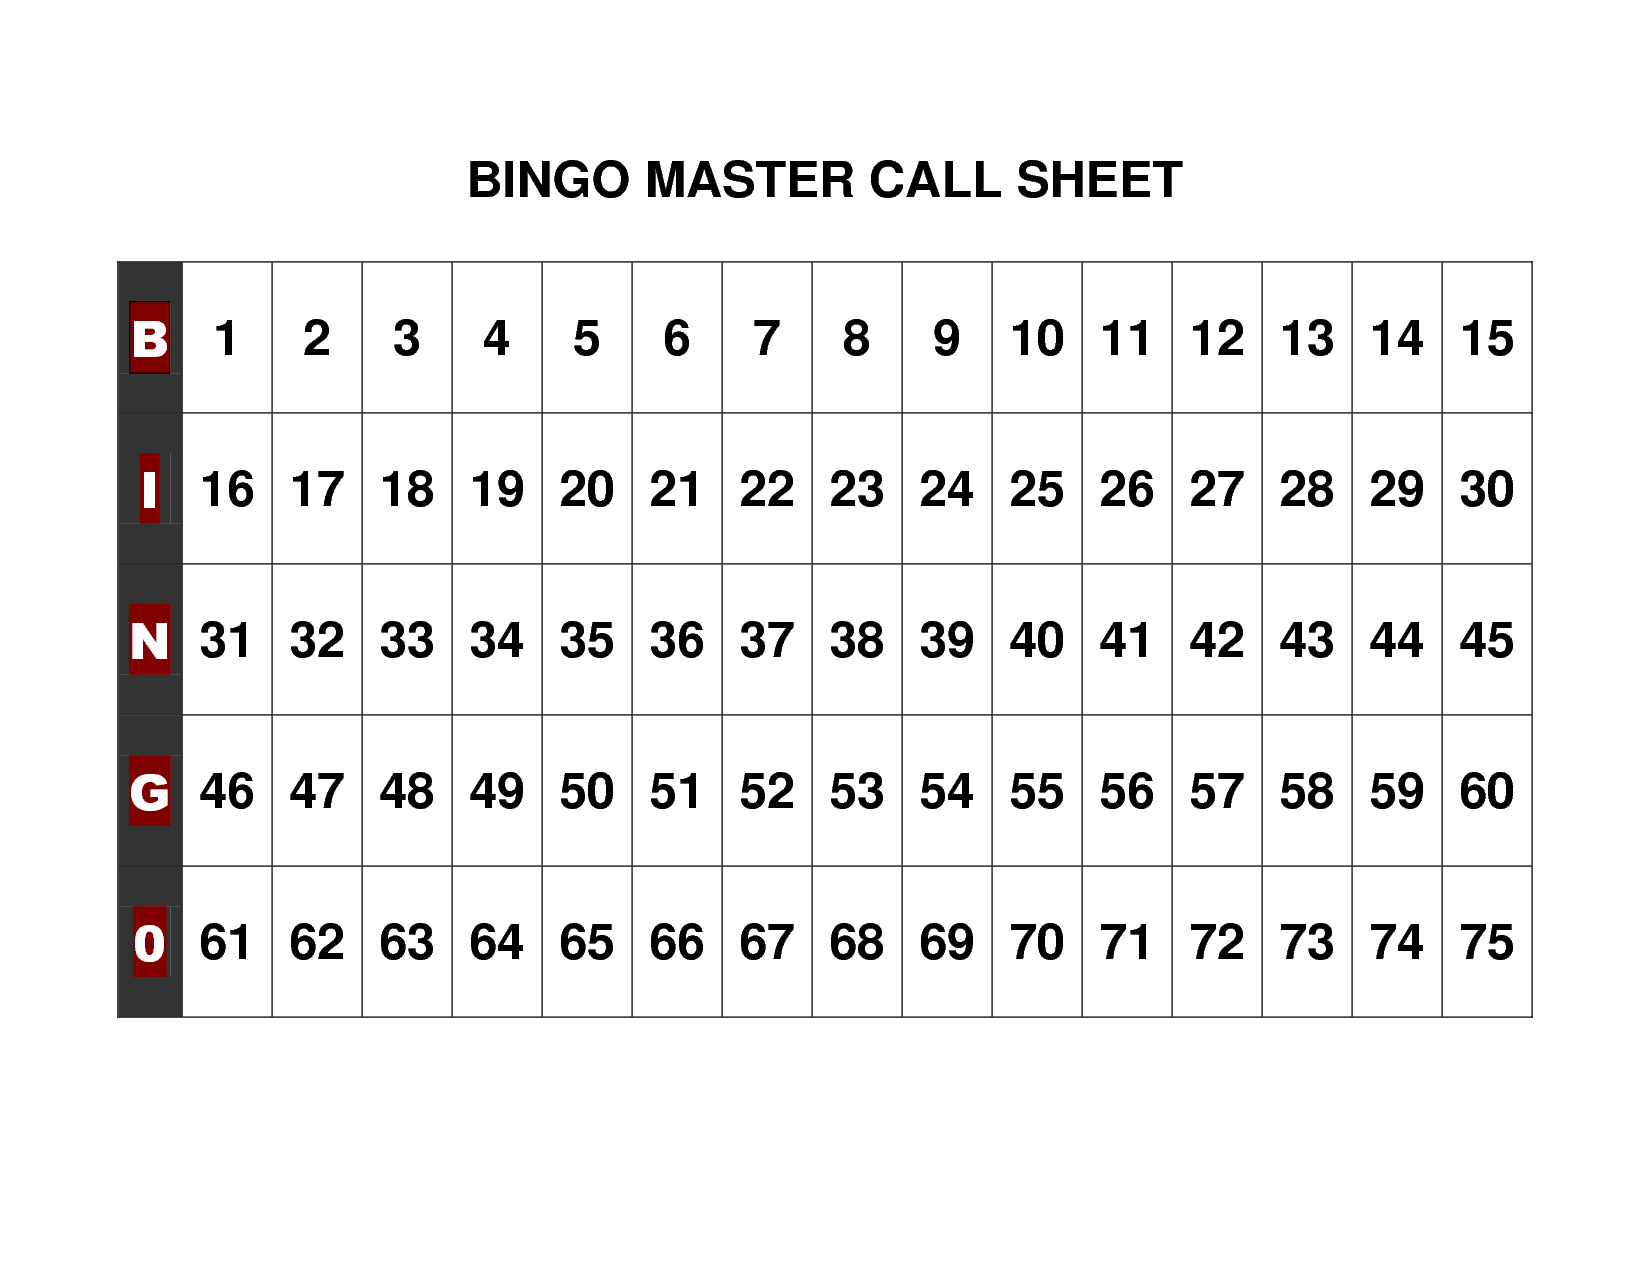 Free+Printable+Bingo+Call+Sheet | Bingo | Bingo Calls, Free - Free Printable Bingo Cards And Call Sheet